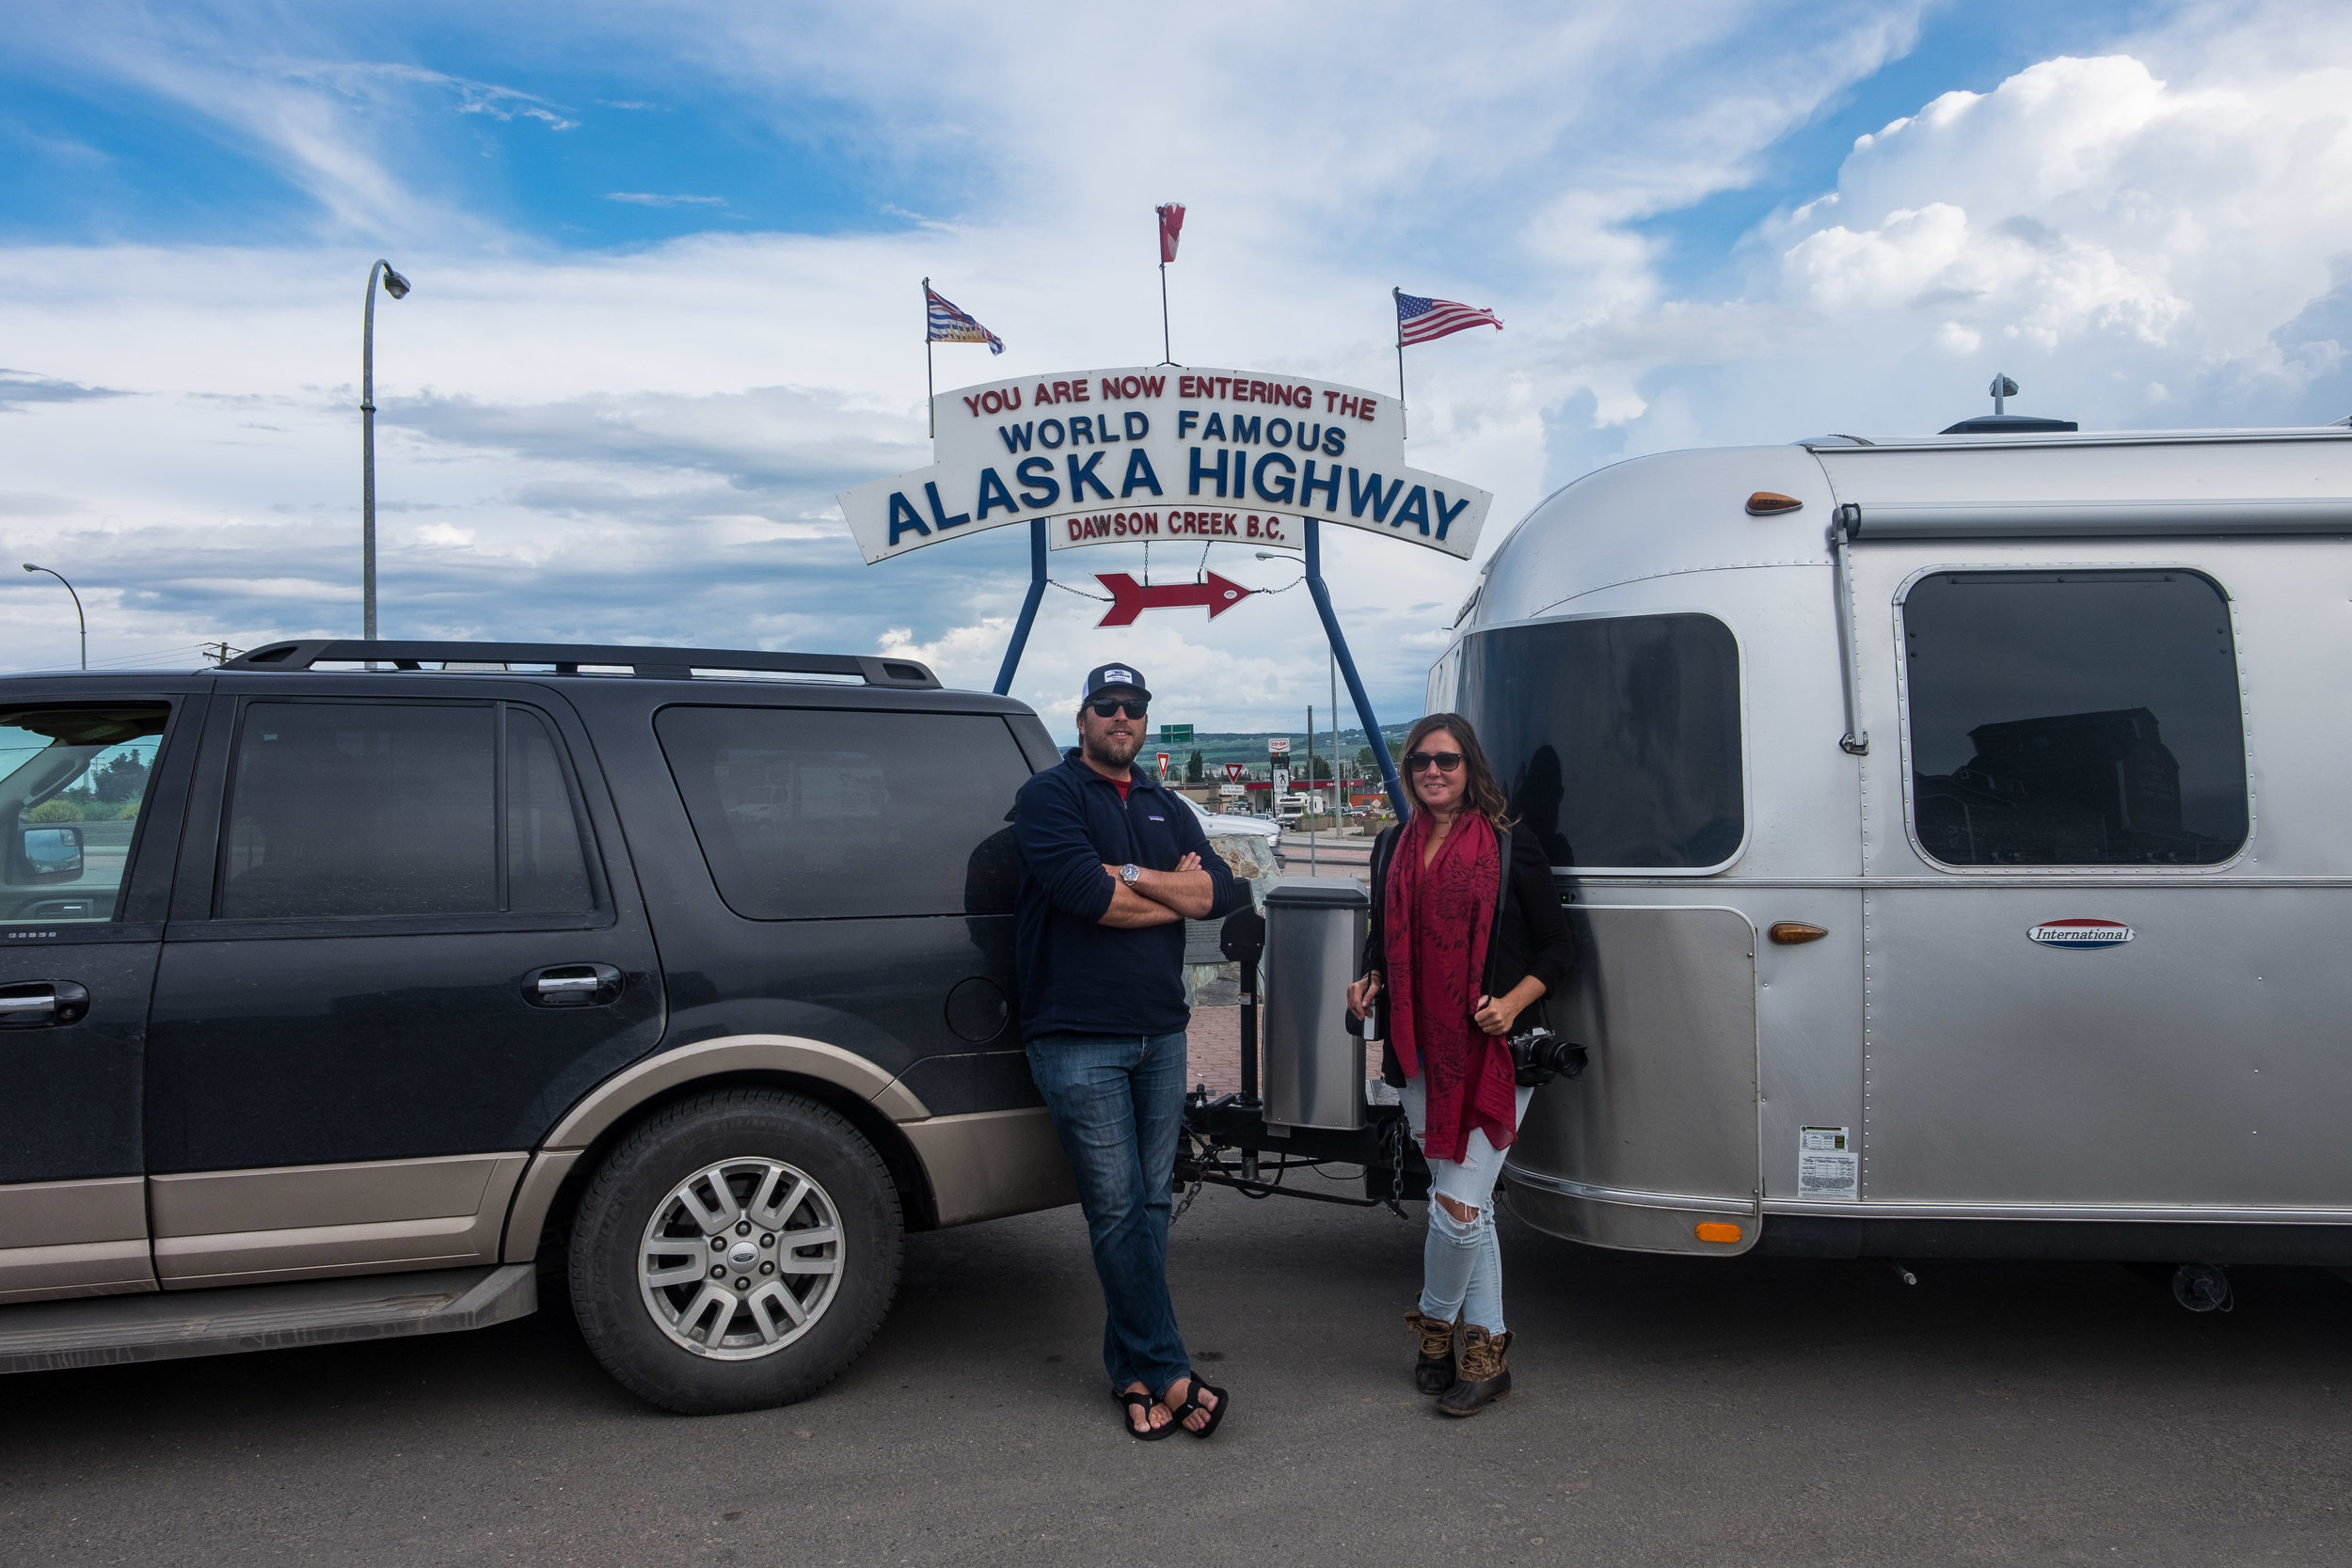 Selfie at the start of the Alaska Highway.